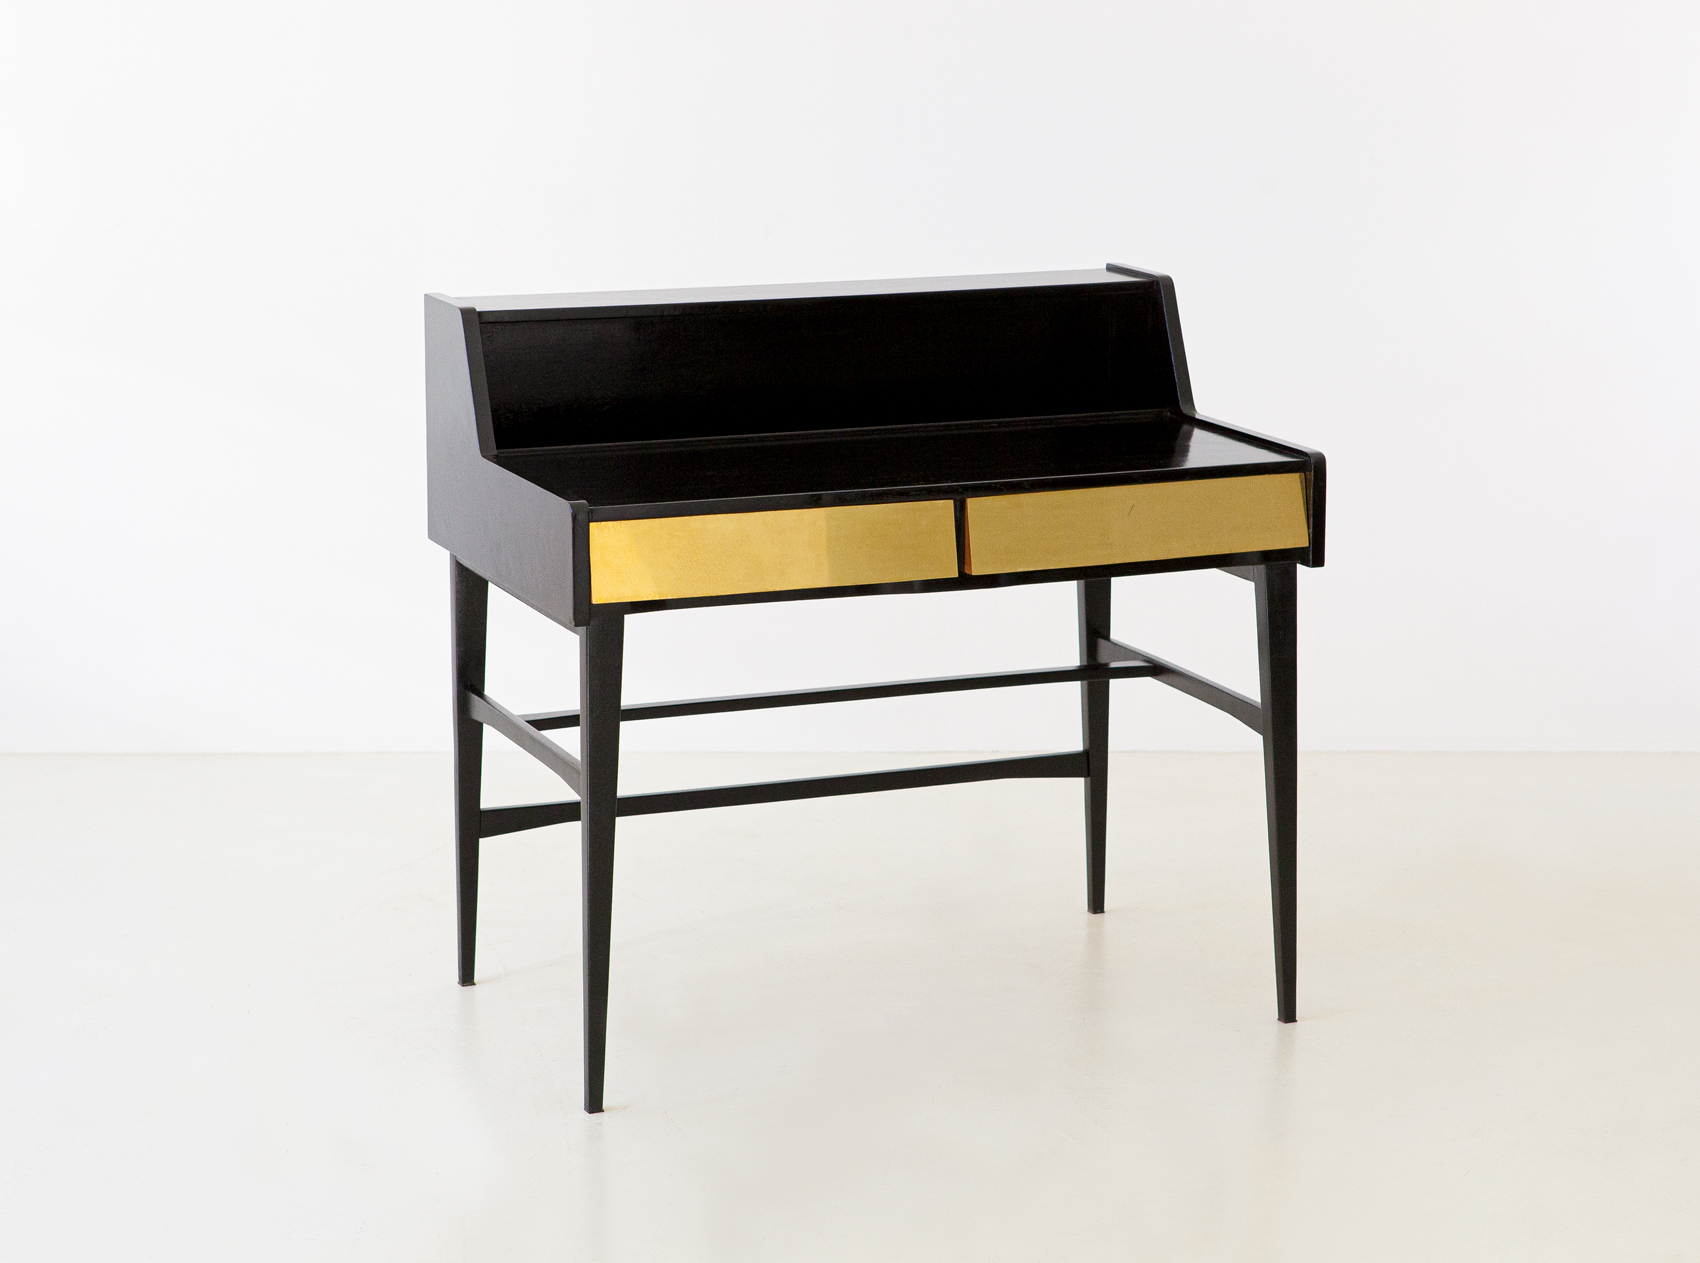 1950s-black-polished-wood-and-brass-desk-7-dt34